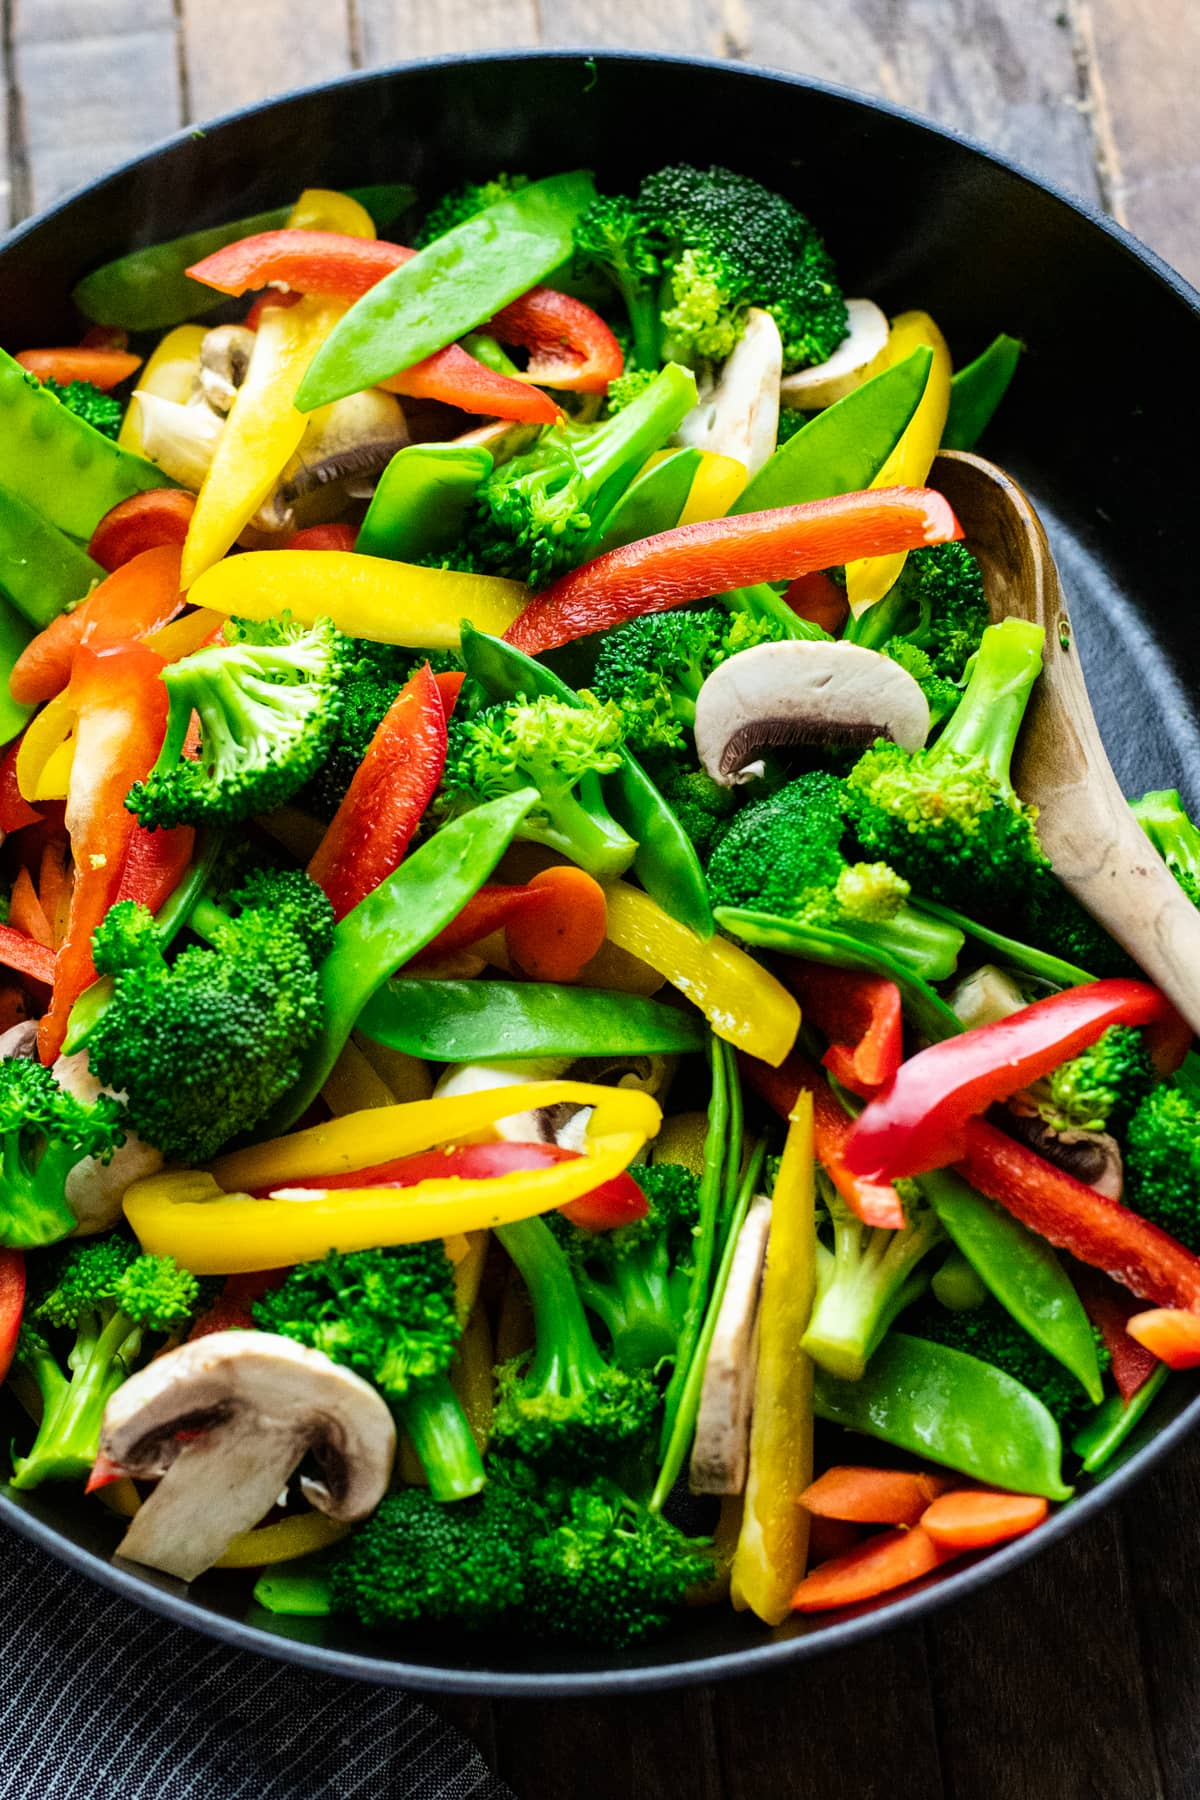 wooden spoon stirring vegetables in black cast iron pan.